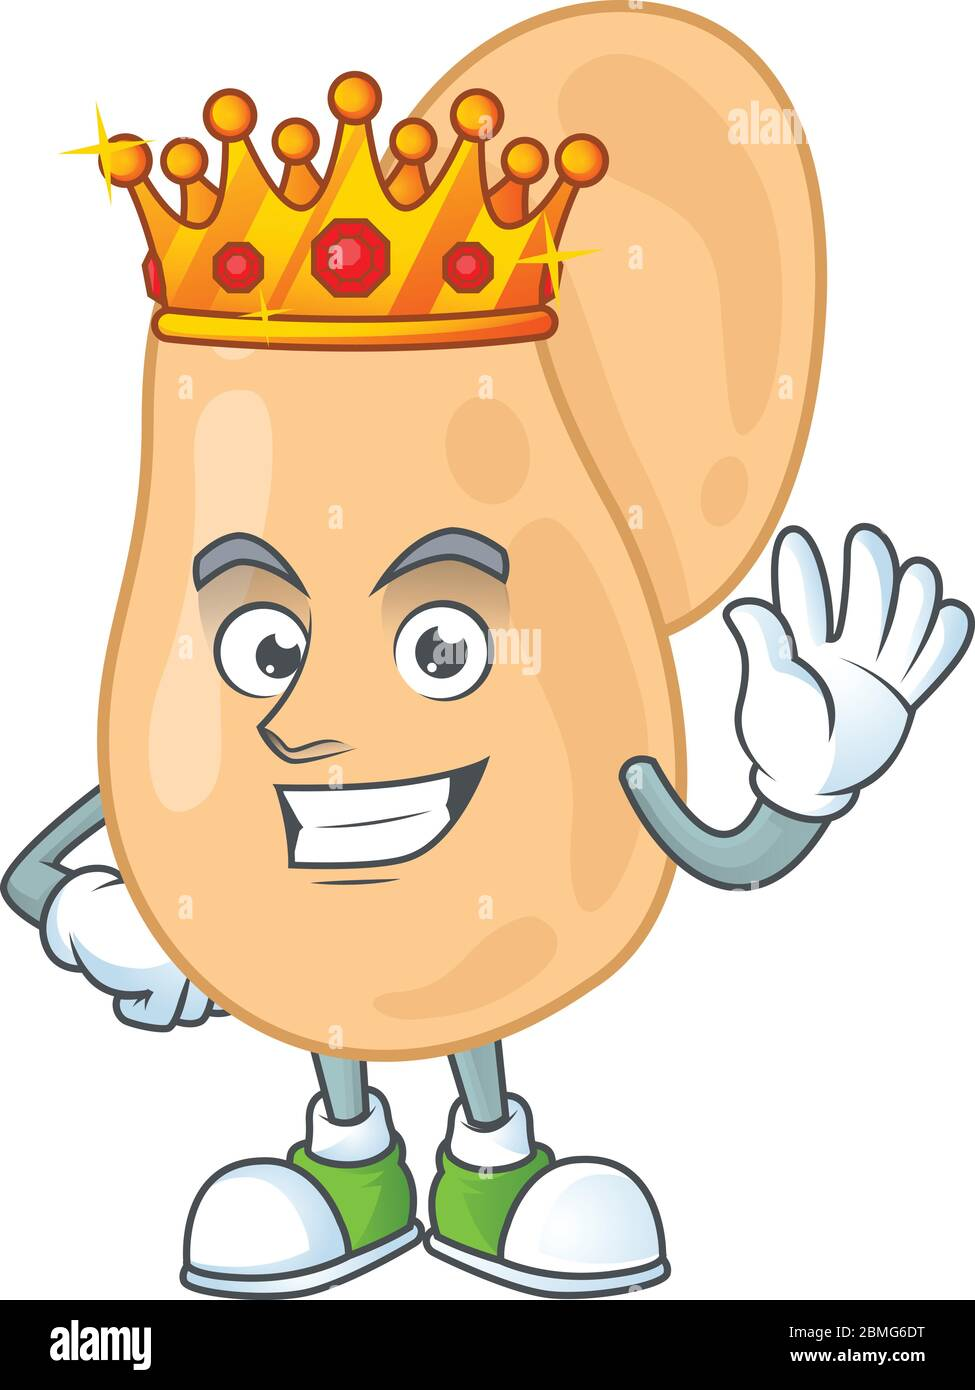 Cartoon King Character Wearing Crown High Resolution Stock Photography And Images Alamy Download a free preview or high quality adobe illustrator ai, eps, pdf and high resolution jpeg versions. https www alamy com the charismatic king of sarcina cartoon character design wearing gold crown image356856804 html